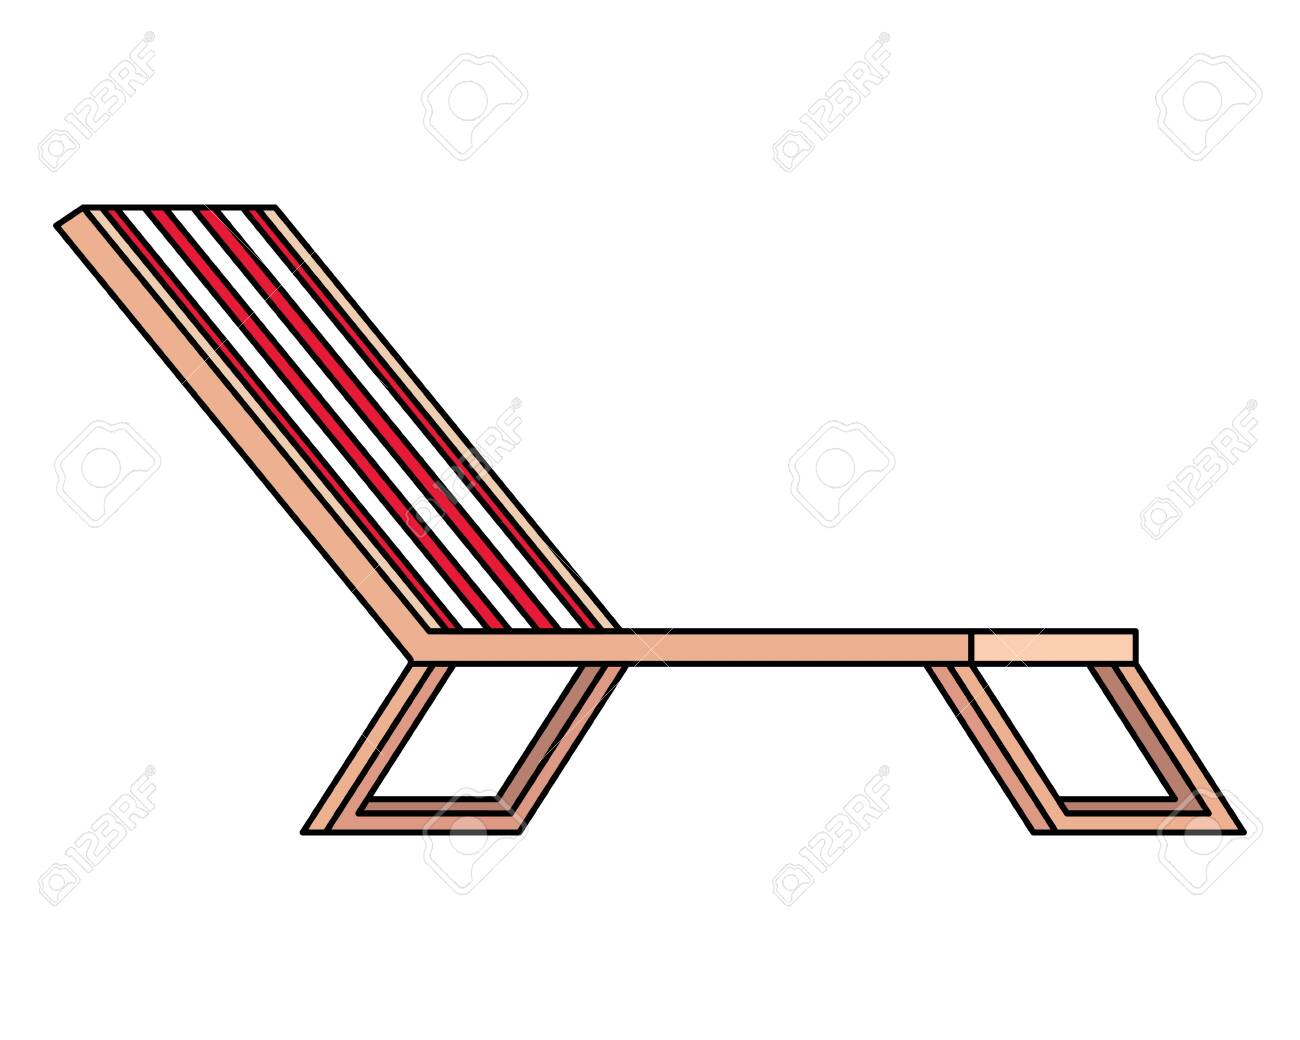 beach chair confort isolated icon vector illustration design - 136511590